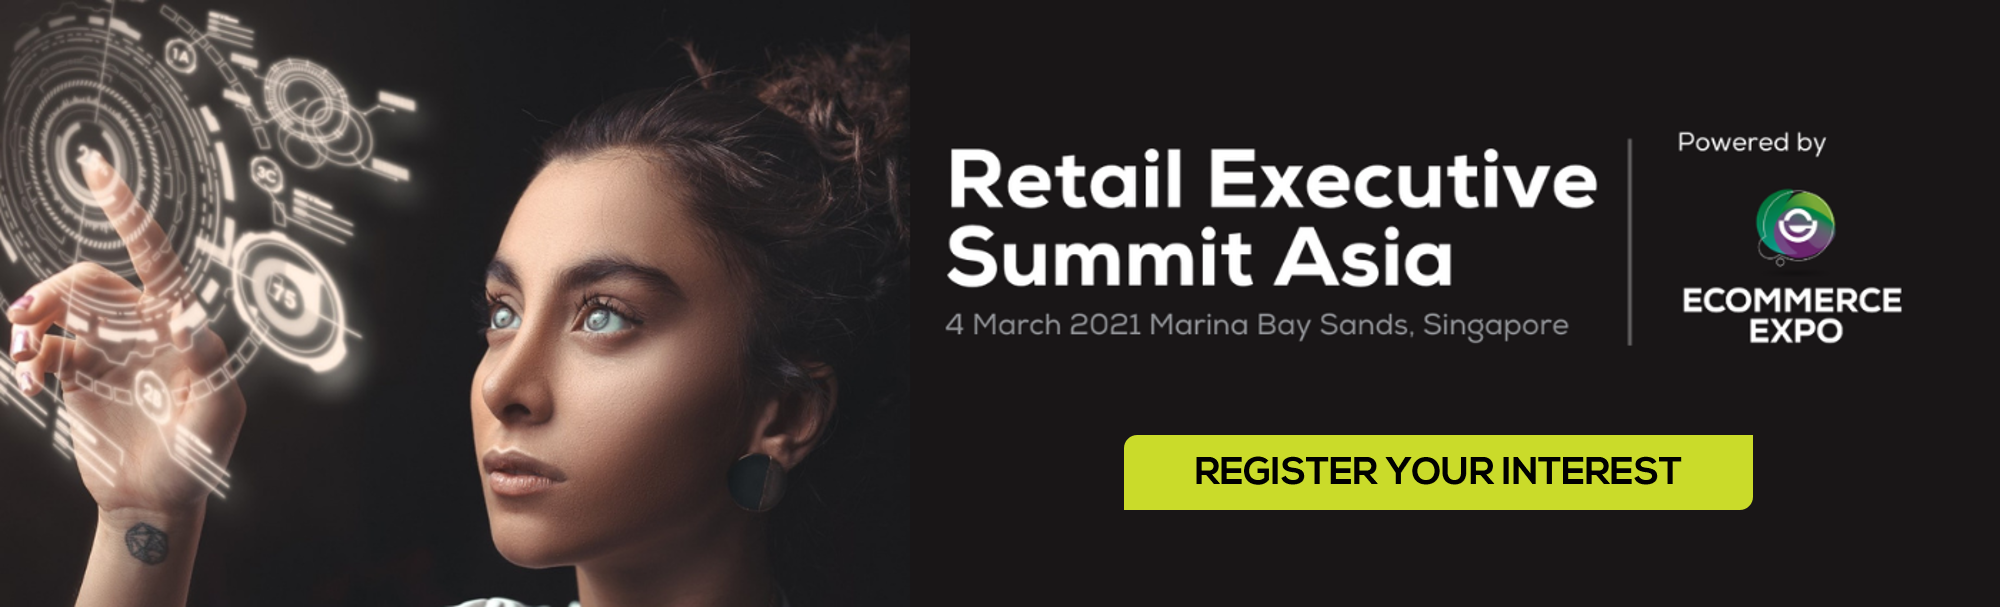 eCommerce Expo Asia to announce Premium Retail Executive Summit in March 2021